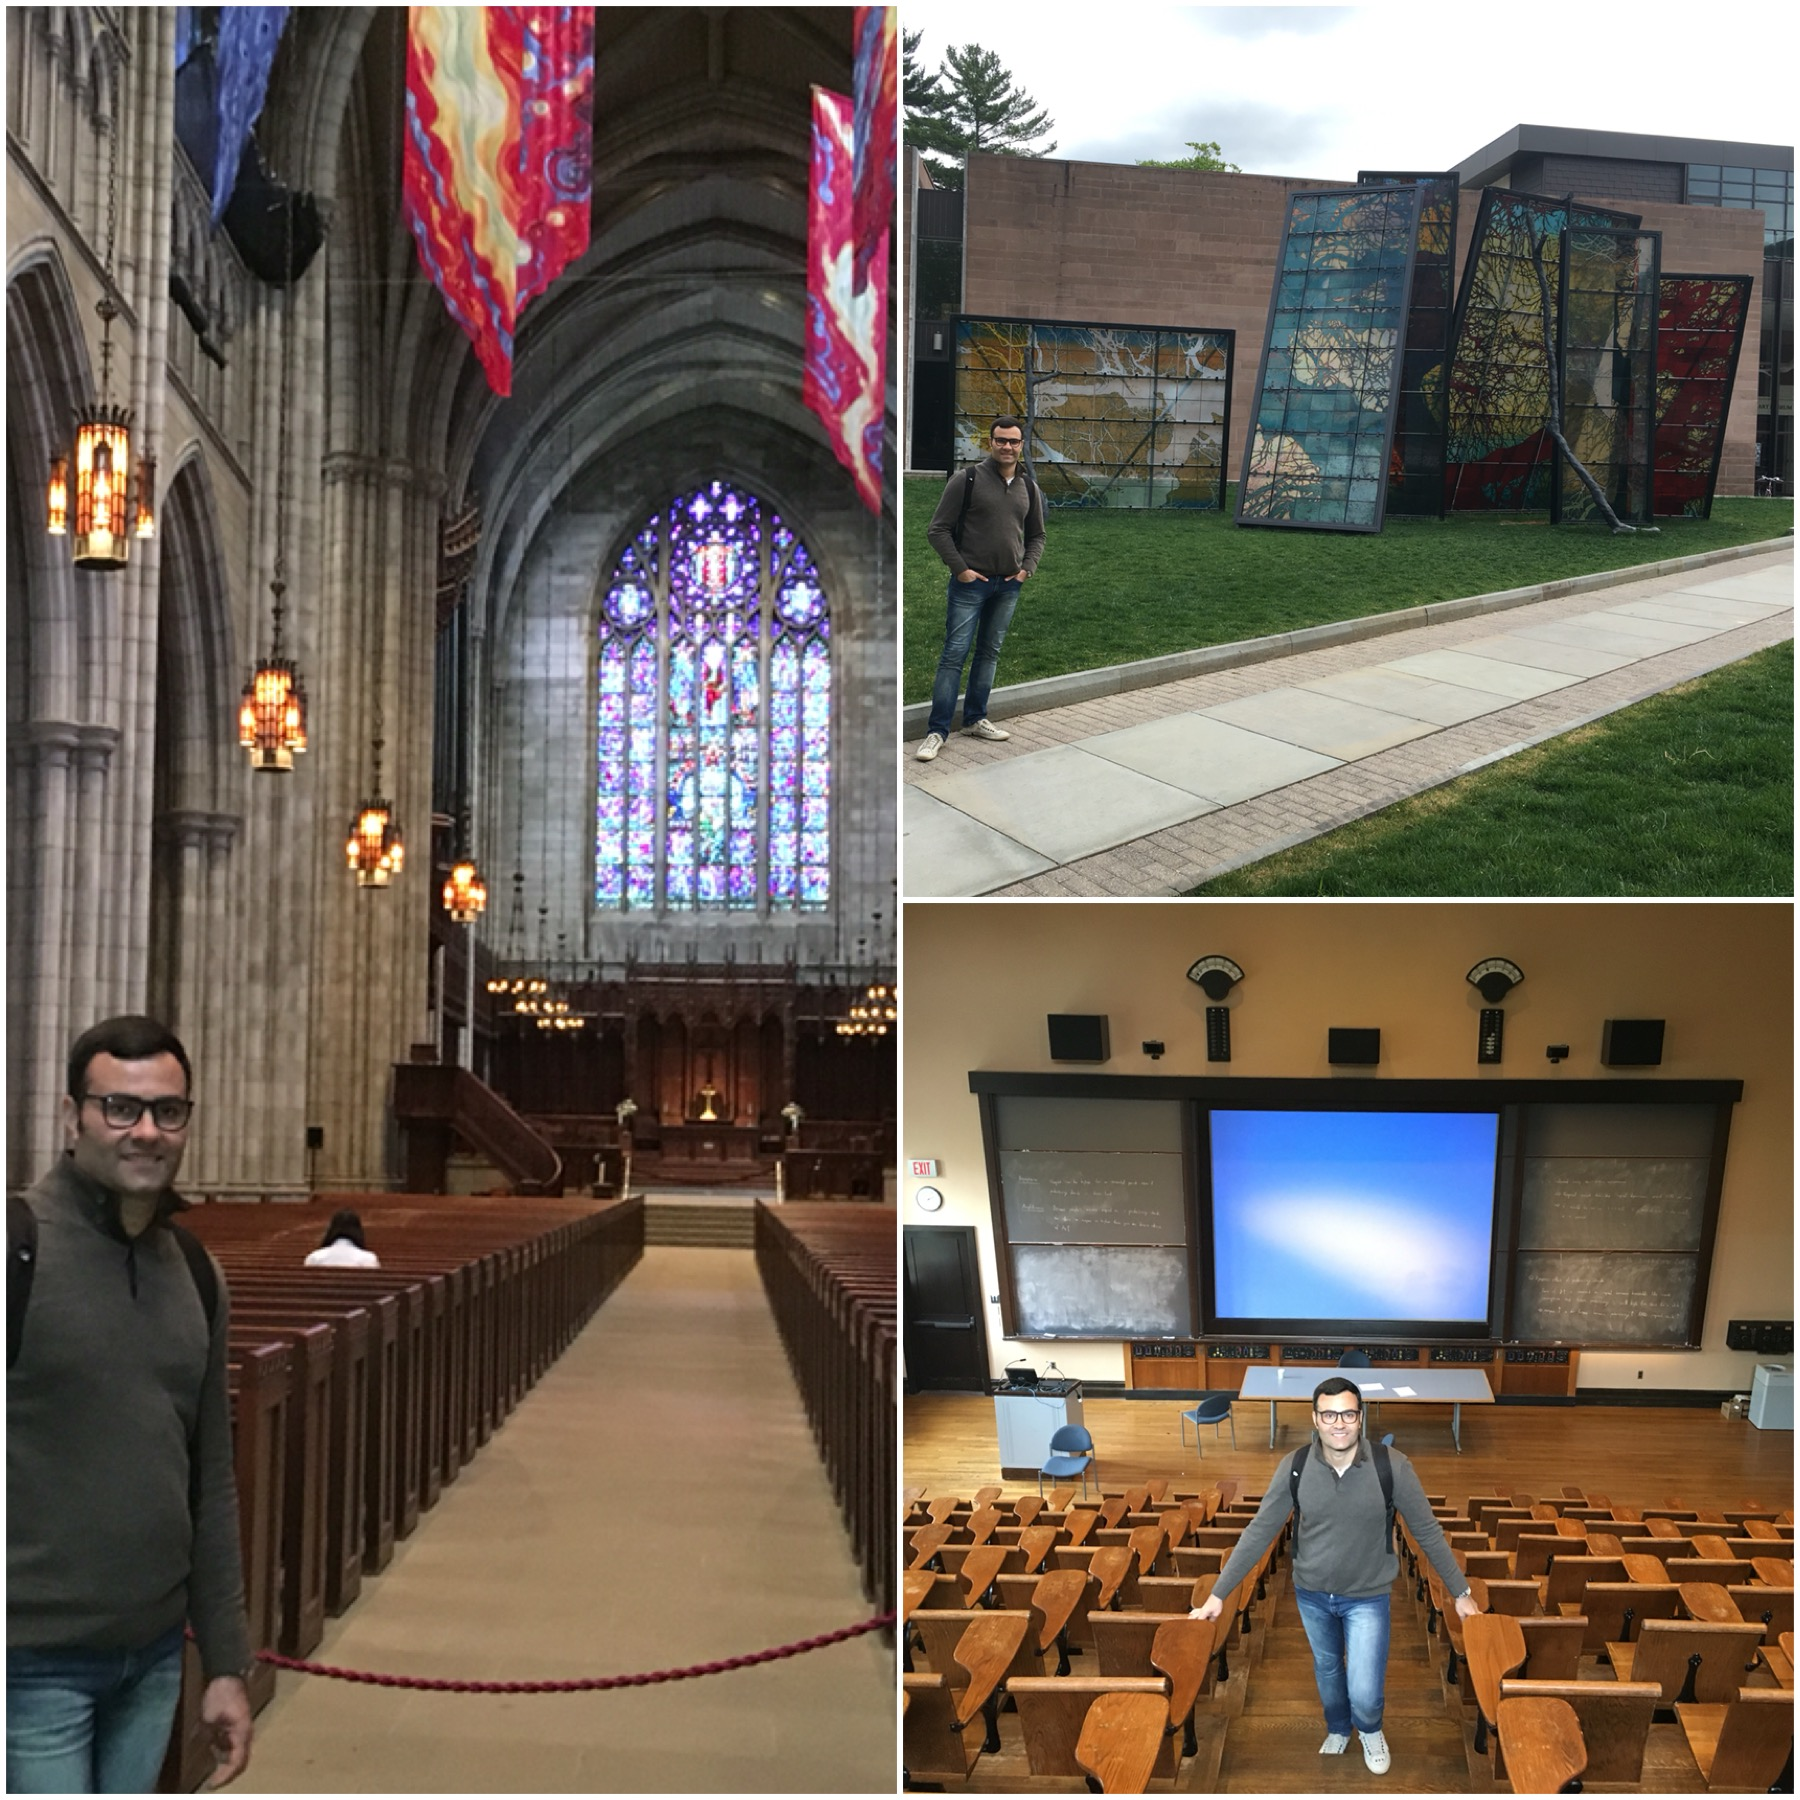 The Princeton Chapel, The Princeton University Art Museum (houses works by Warhol, Judd, Monet, and more!), a classroom where Albert Einstein used to teach!